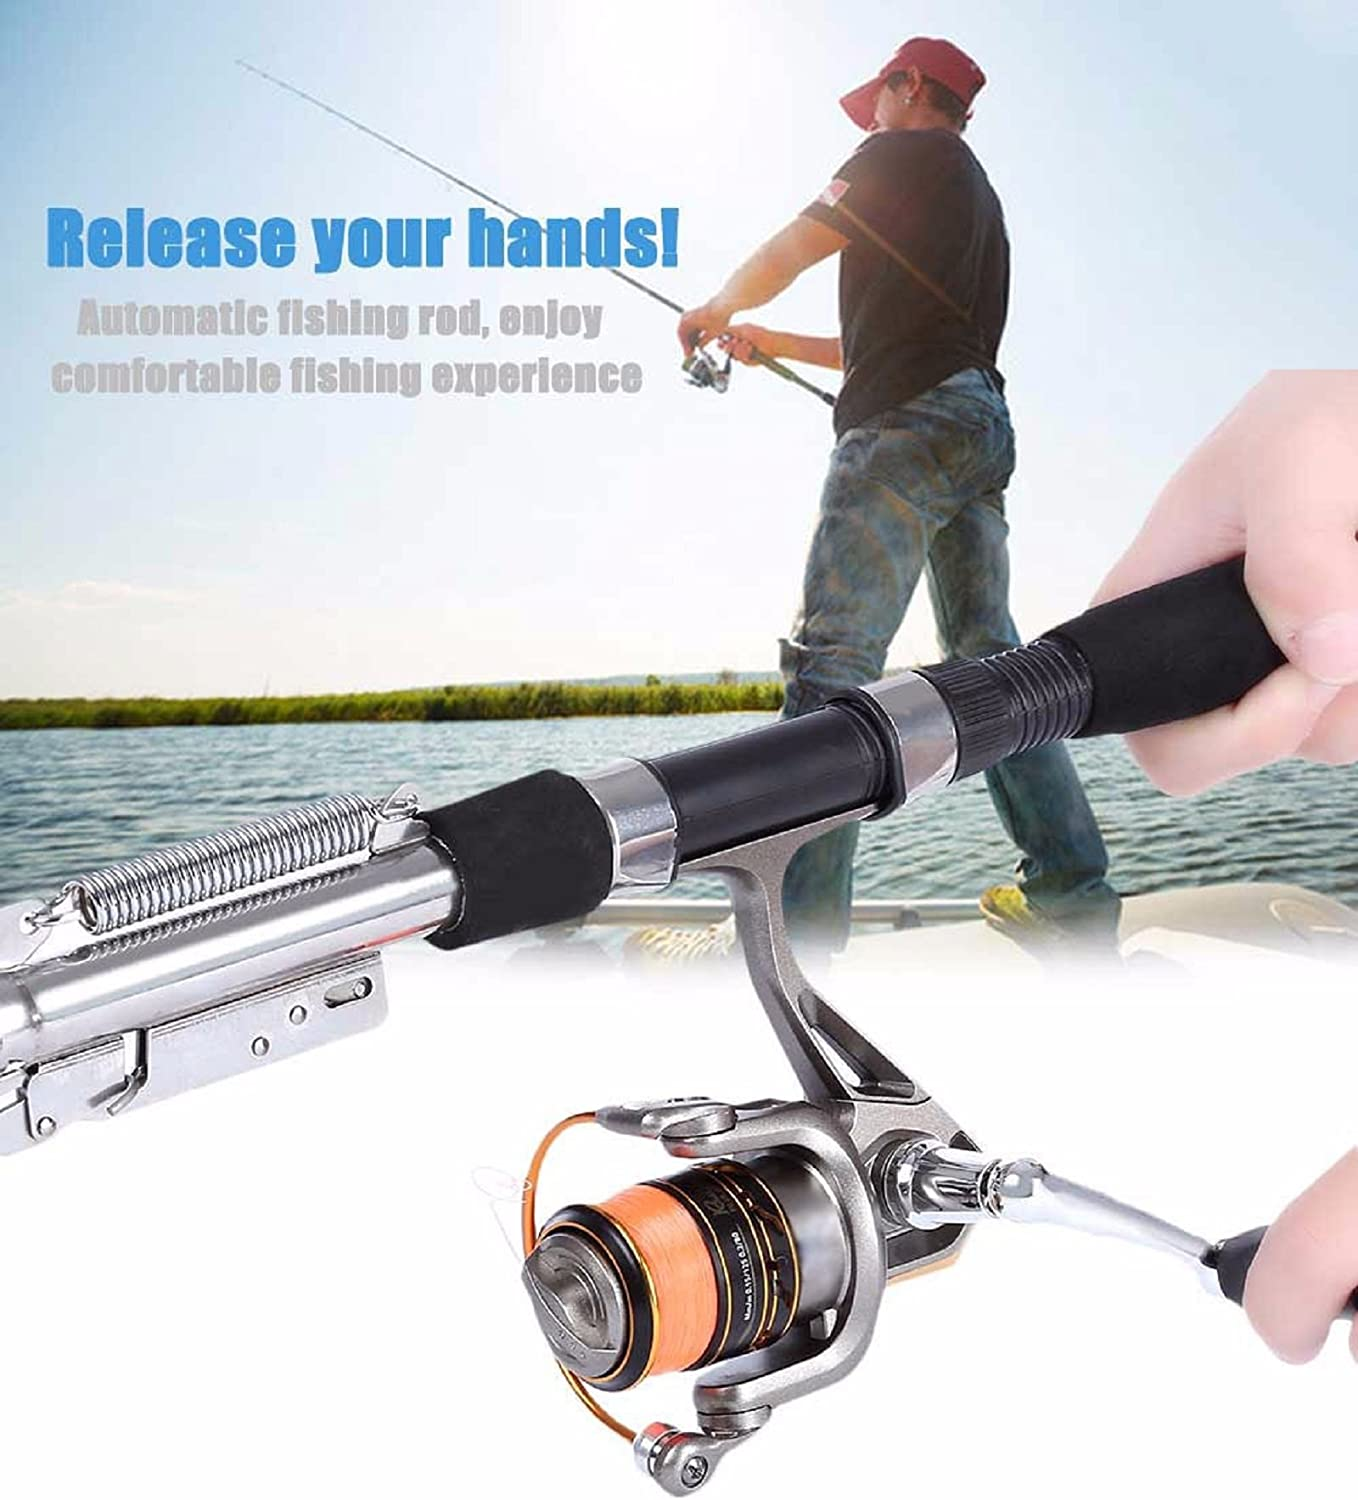 Stainless Steel Automatic Fishing Rod Spinning Telescopic Spring Sea River Lake